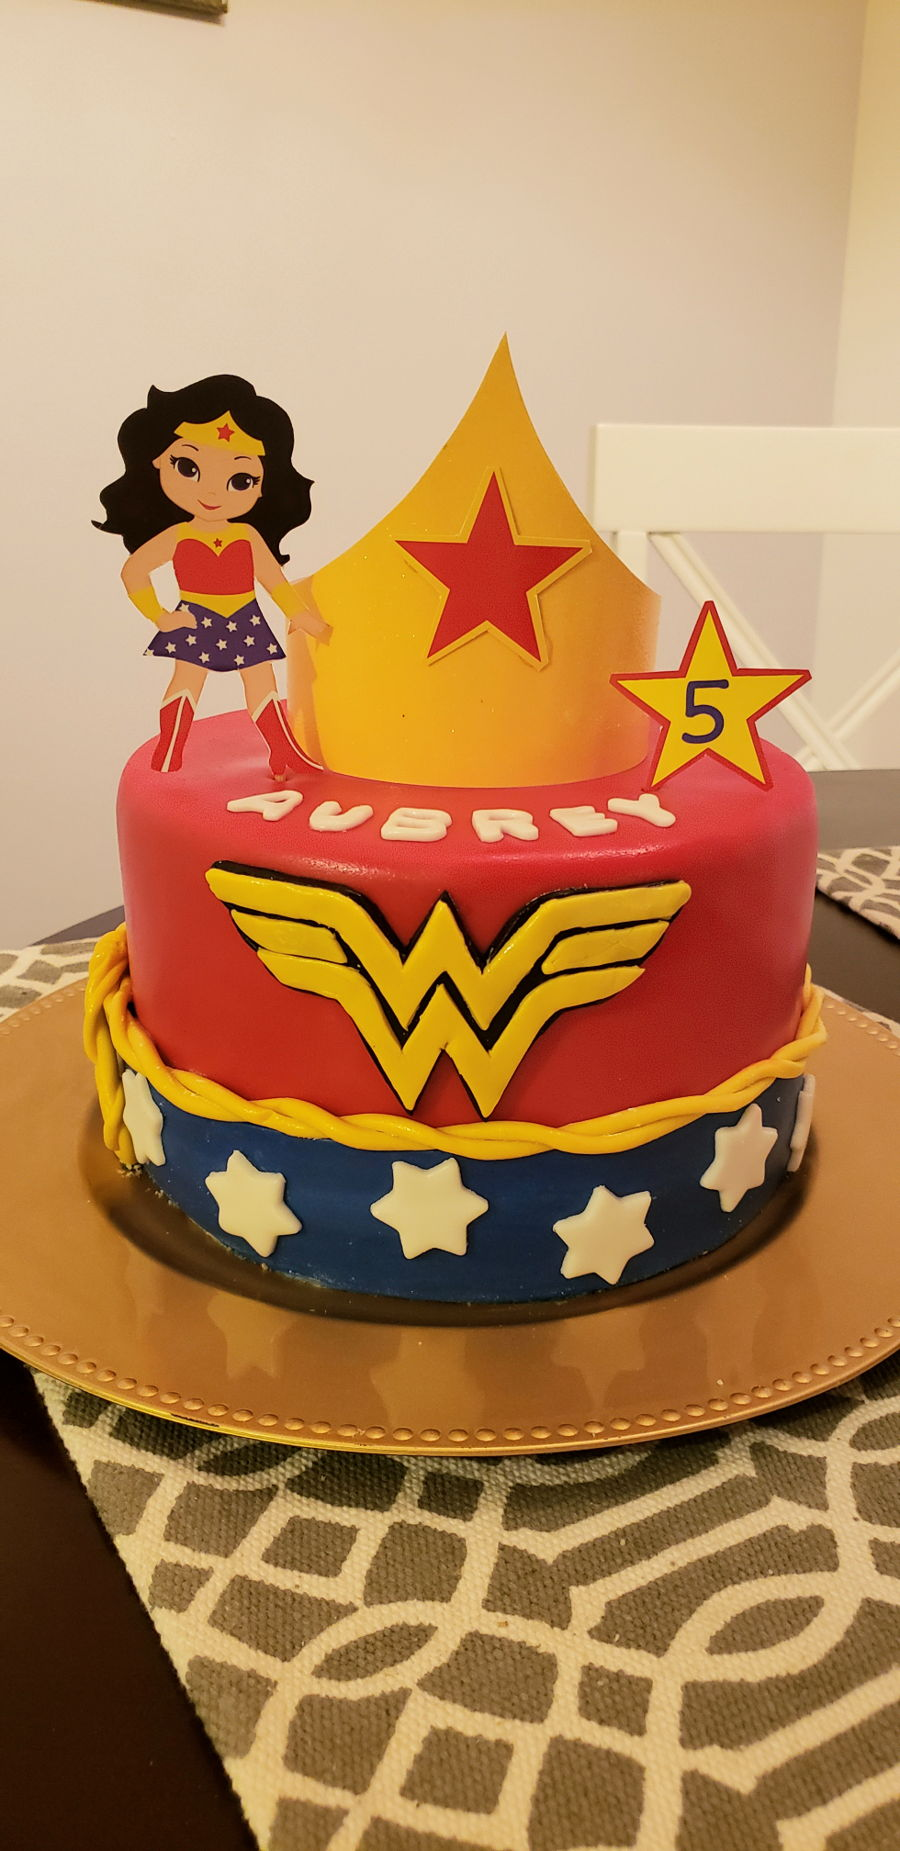 Wonder Woman on Cake Central